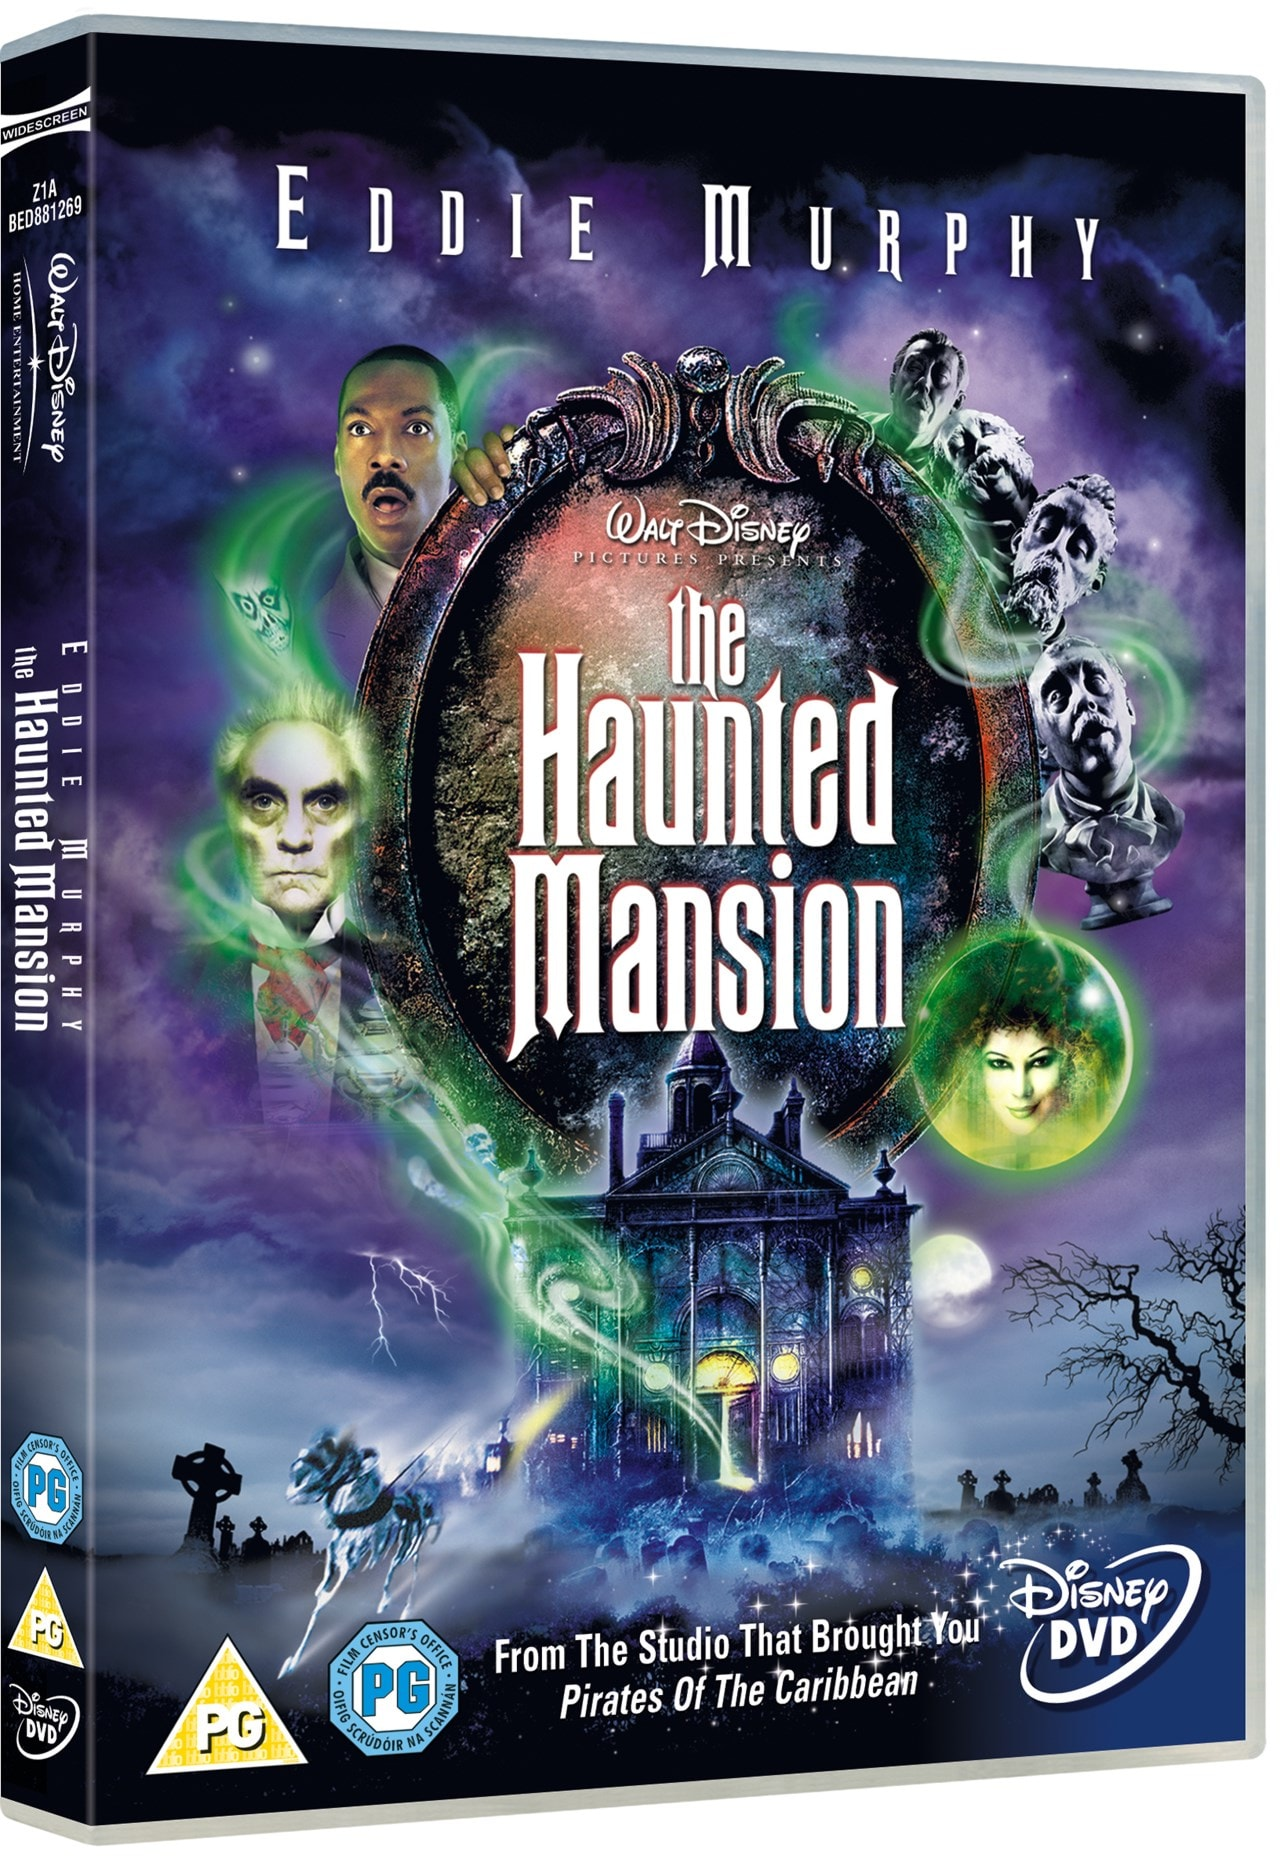 The Haunted Mansion - 2